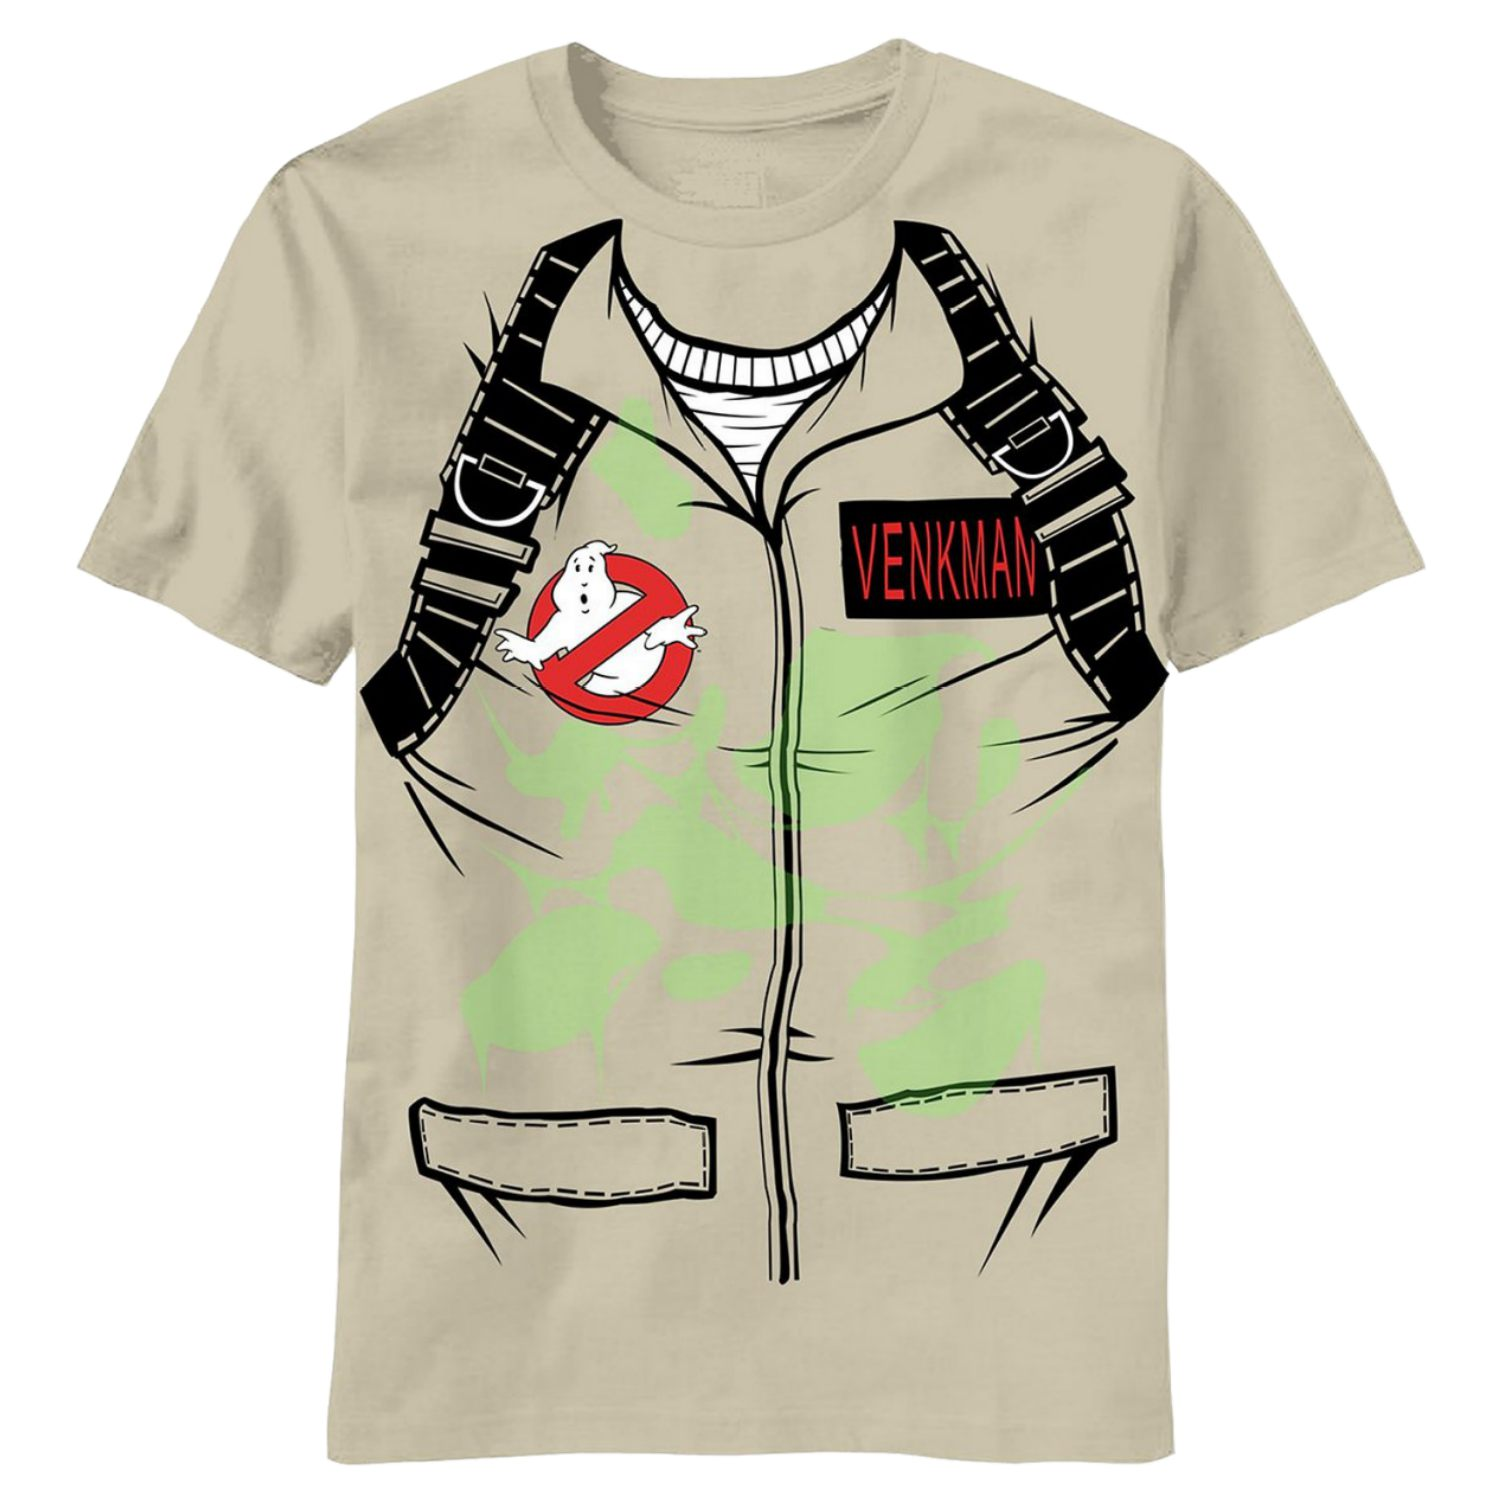 Ghostbusters Mens Glow In The Dark Green Slime Venkman Costume T-Shirt